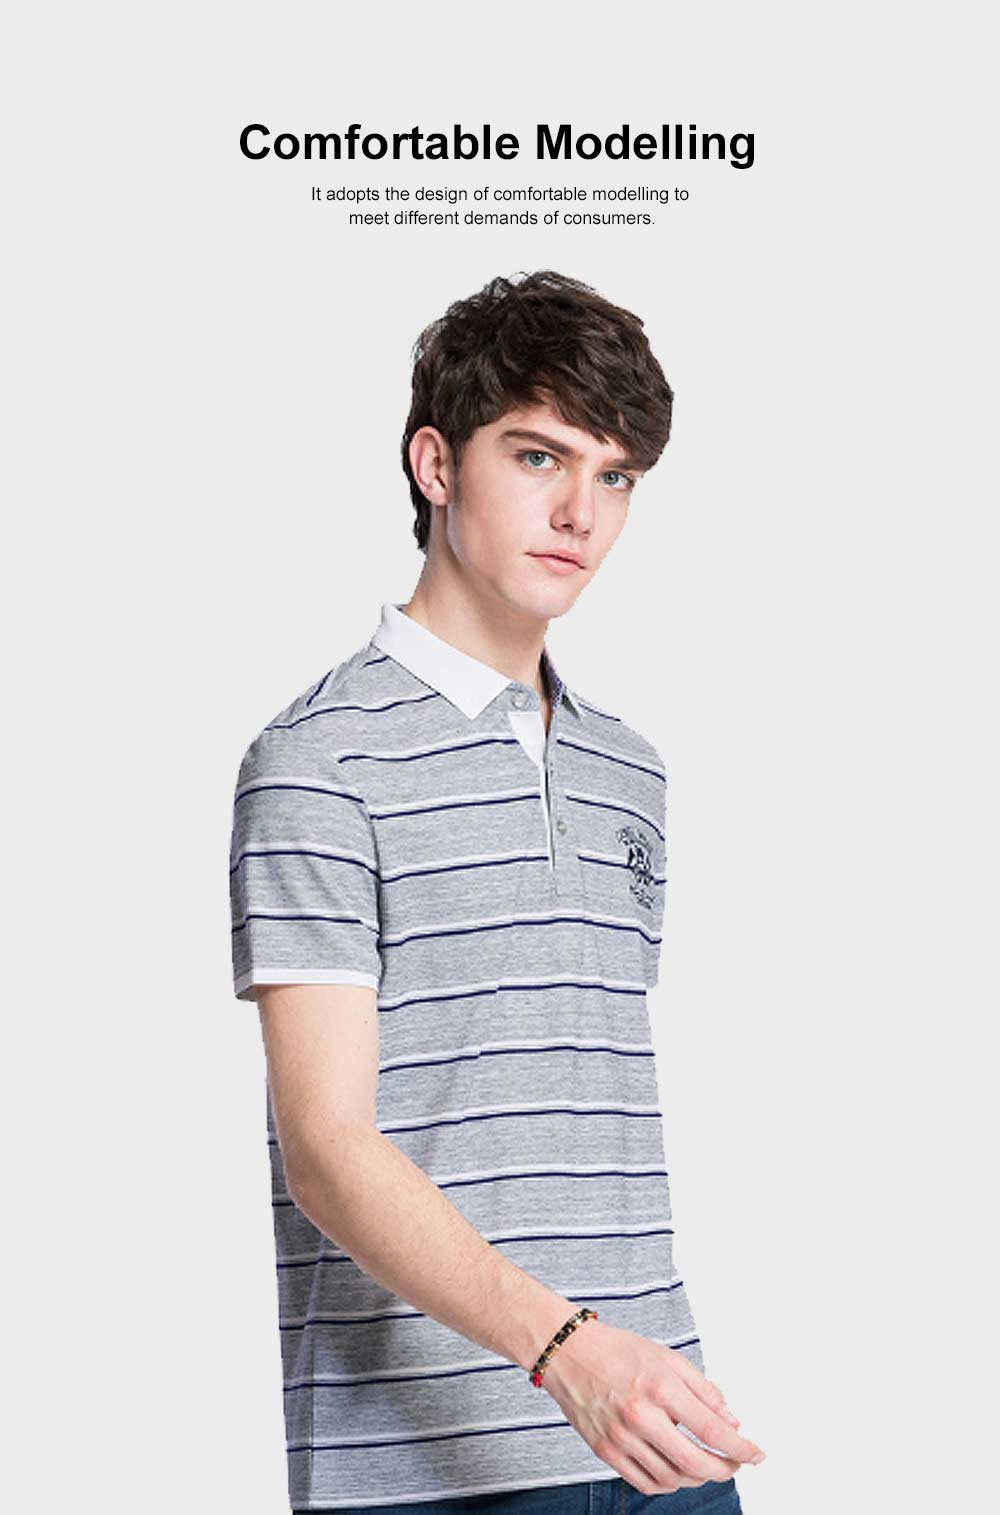 Rib Neckline Polo Shirt for Men, Perspire Fastener Design Shirt, Breathable Short-sleeve Polo Summer 2019 1